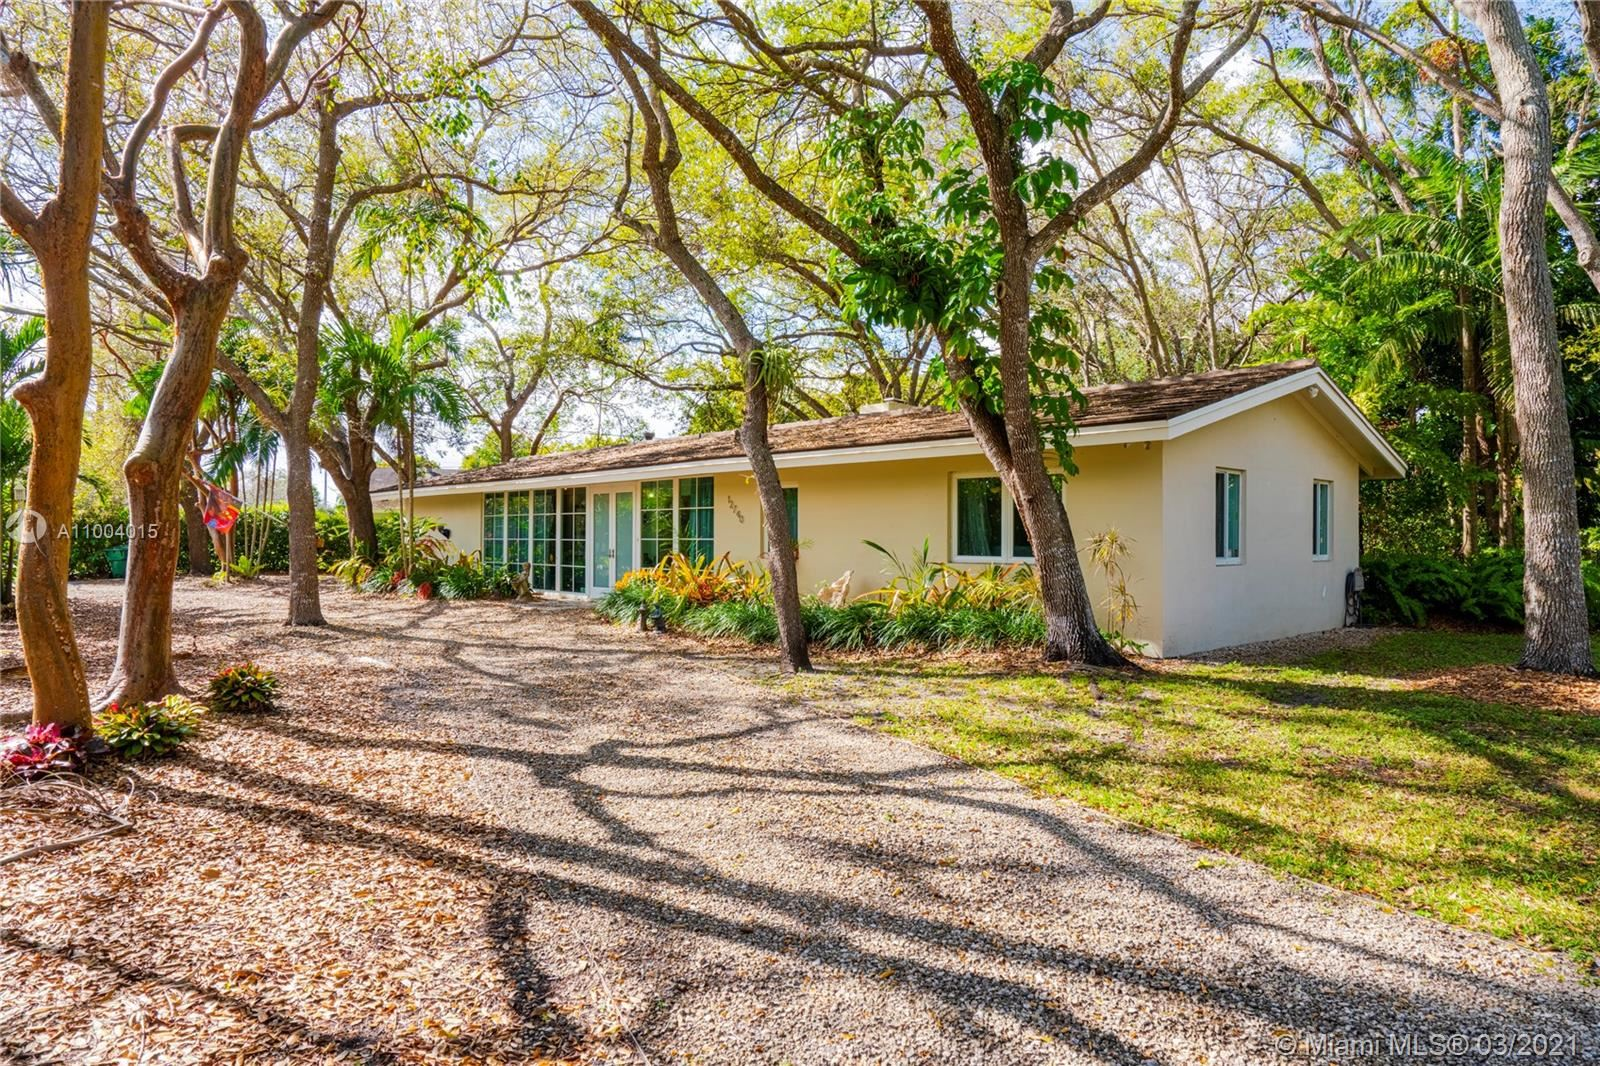 12740 SW 80th Ave, Pinecrest, FL 33156 - #: A11004015